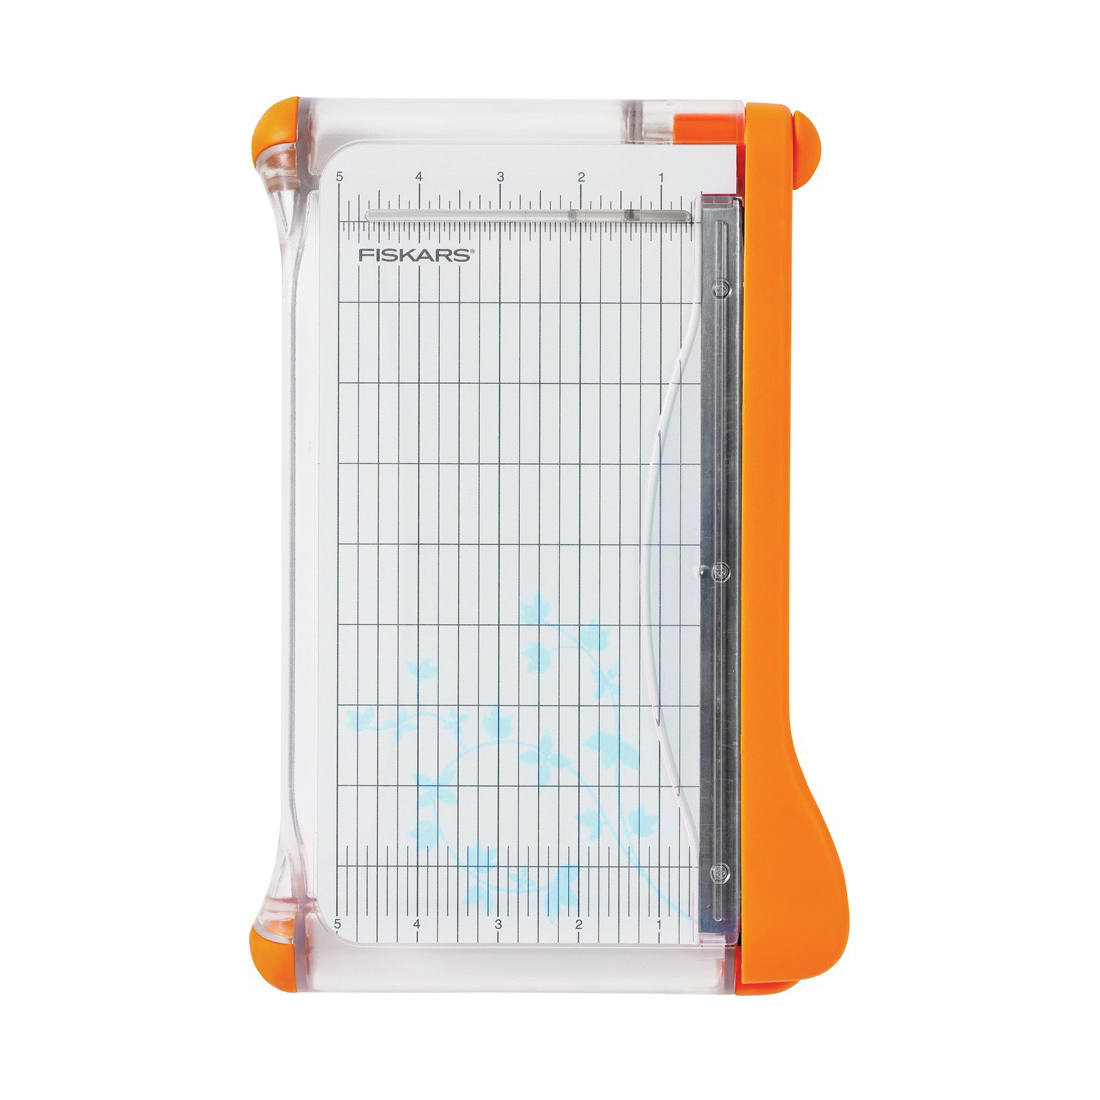 Picture of FISKARS 199130-1001 Paper Trimmer, 9 in L, 8 in W Paper, 8-1/2 in L Cutting